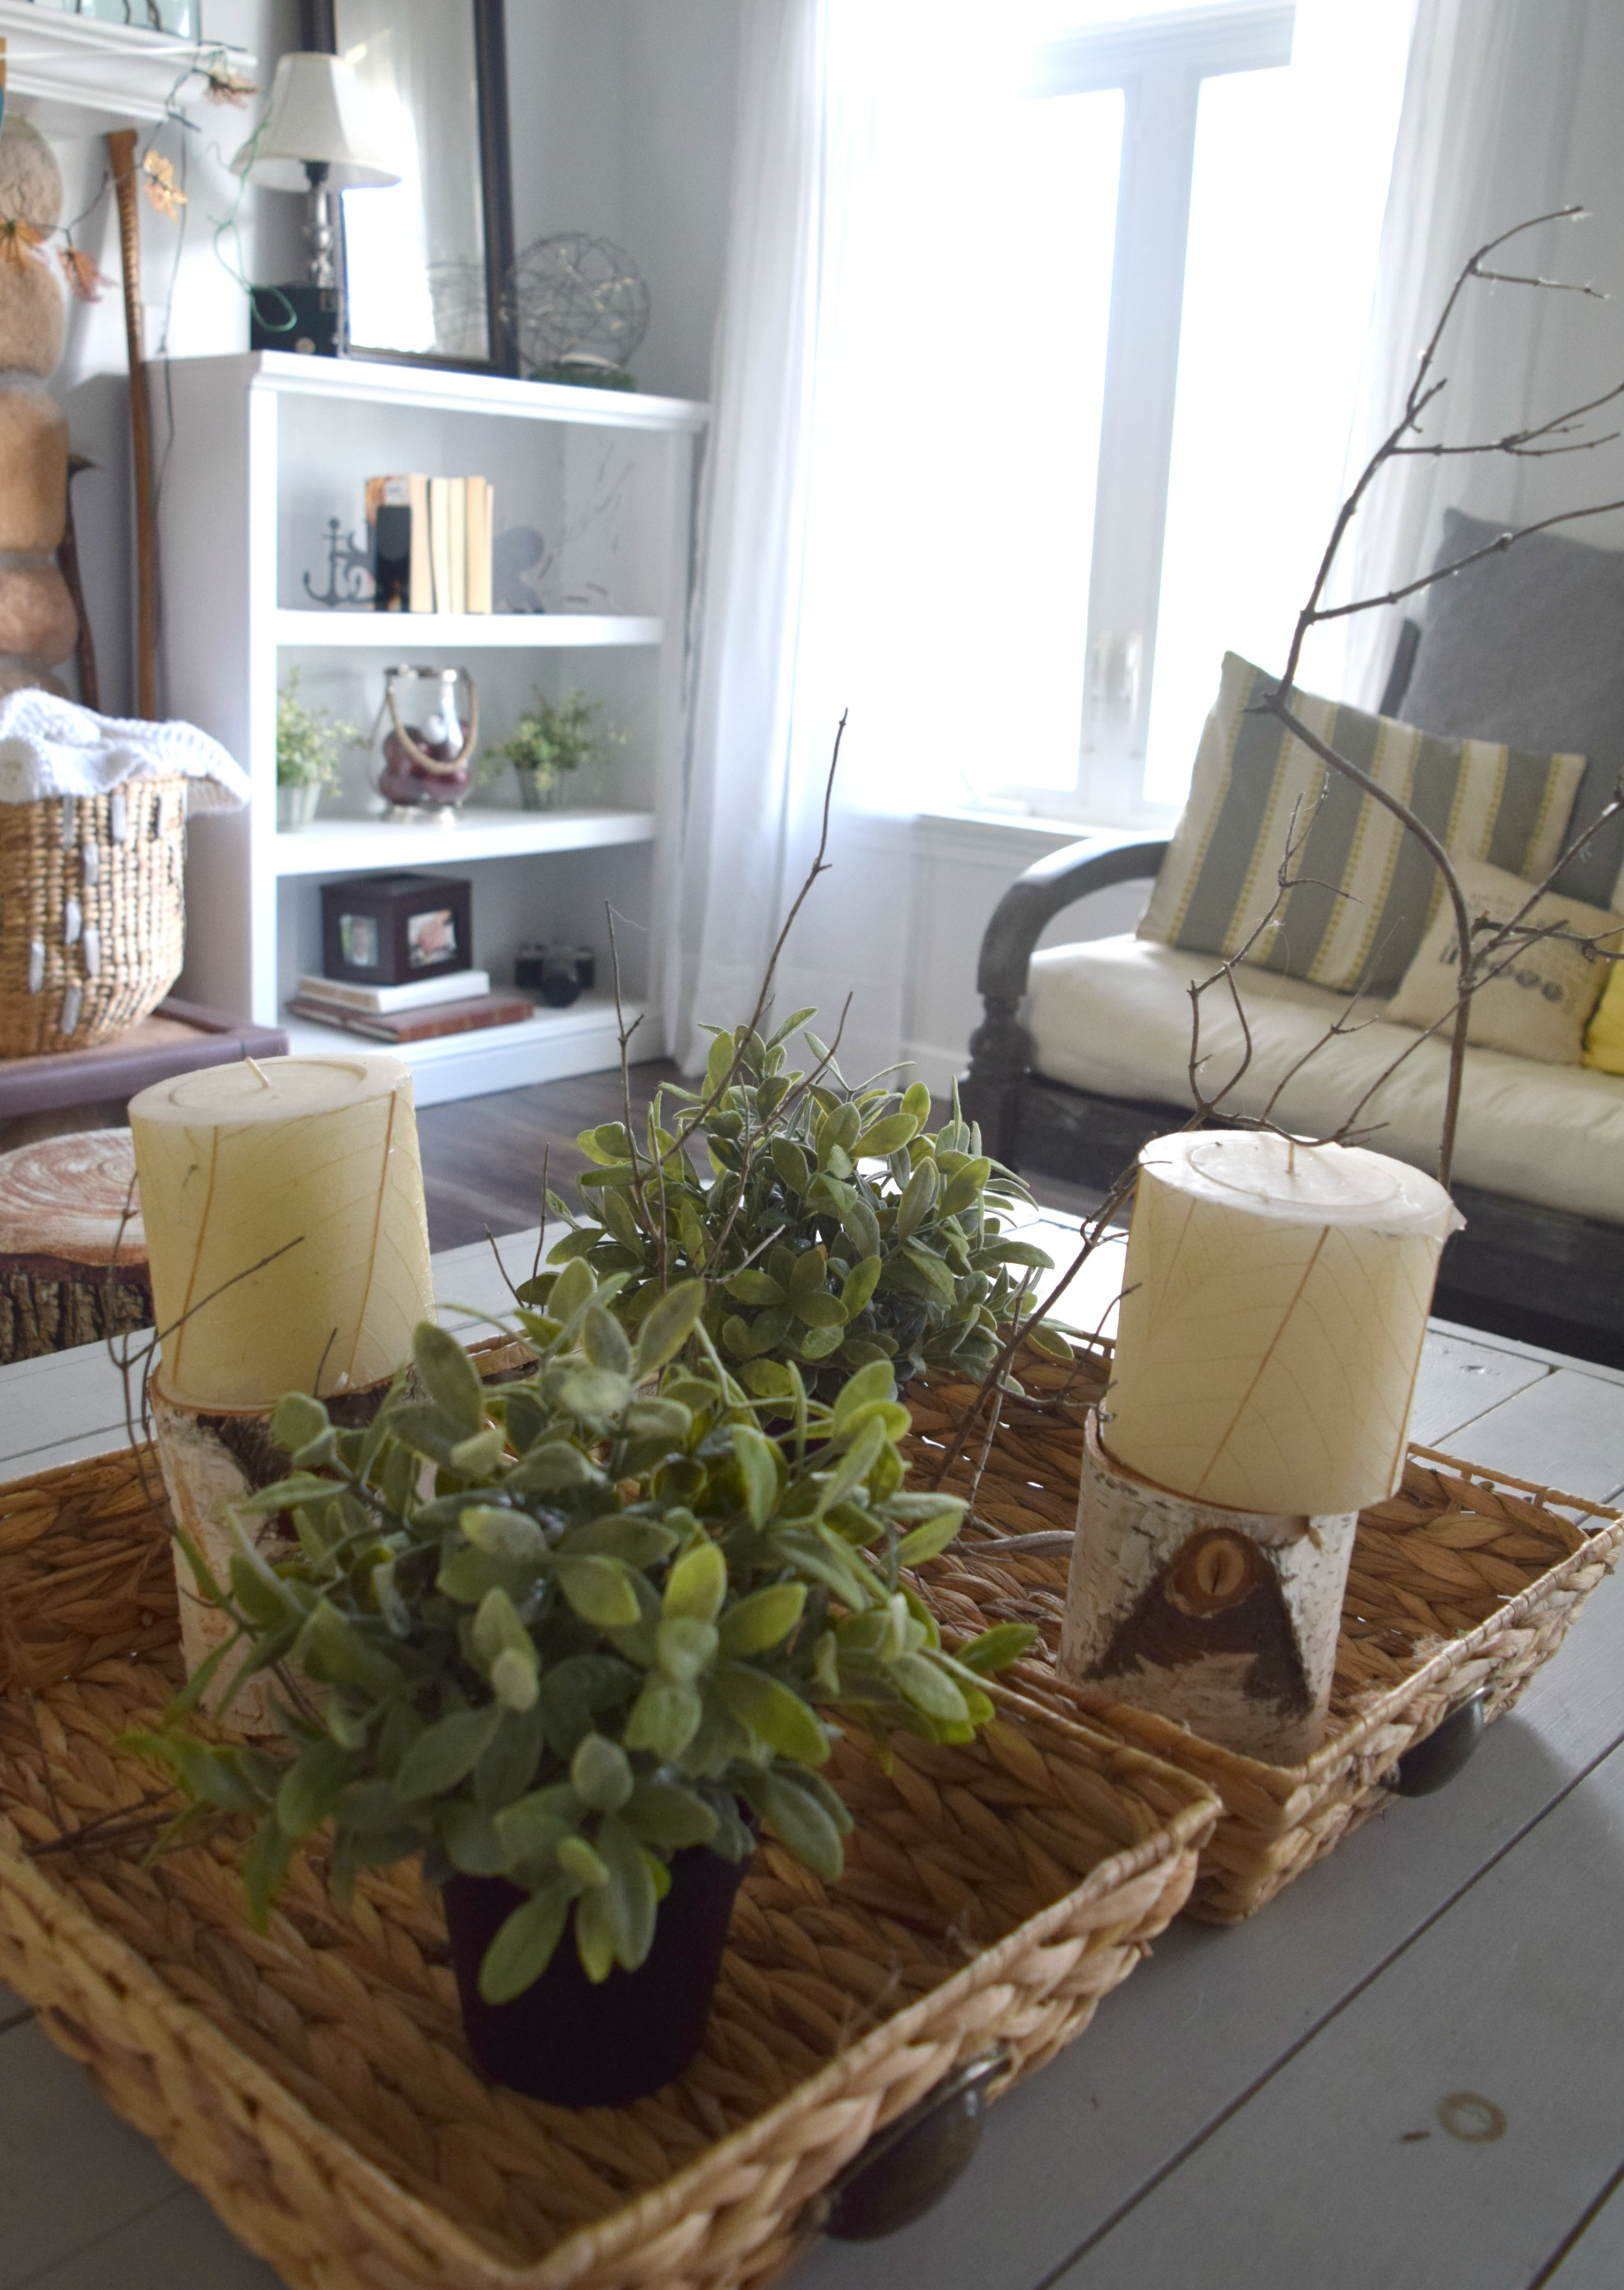 How To Decorate With Nature Inspired Elements Our House Now A Home